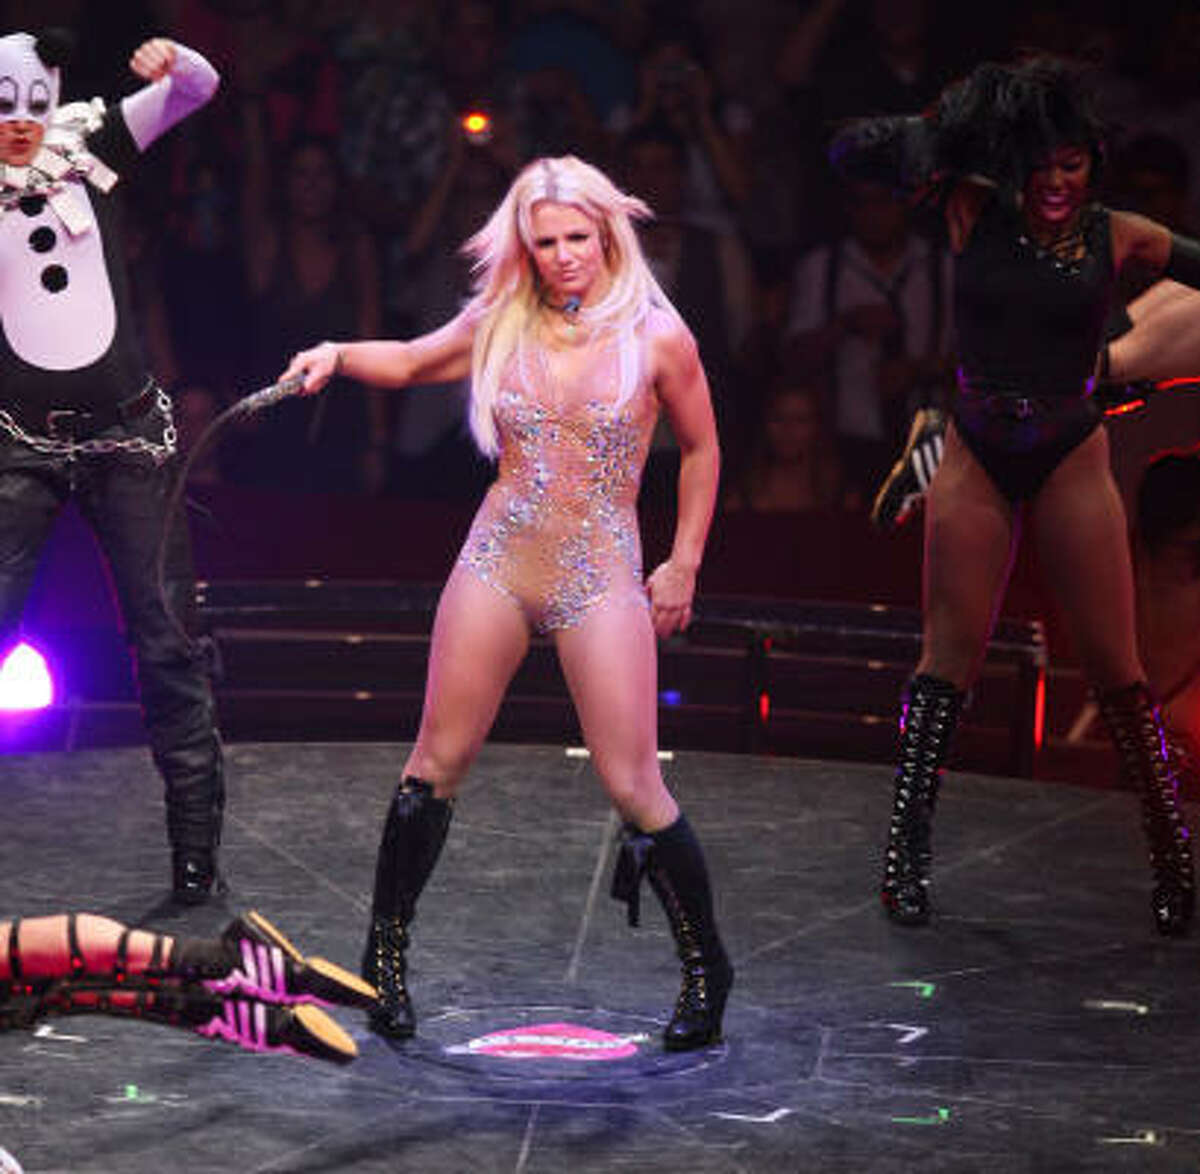 Britney Spears performs at Toyota Center during The Britney Spears Circus tour on Wednesday. Read a review of the show here.